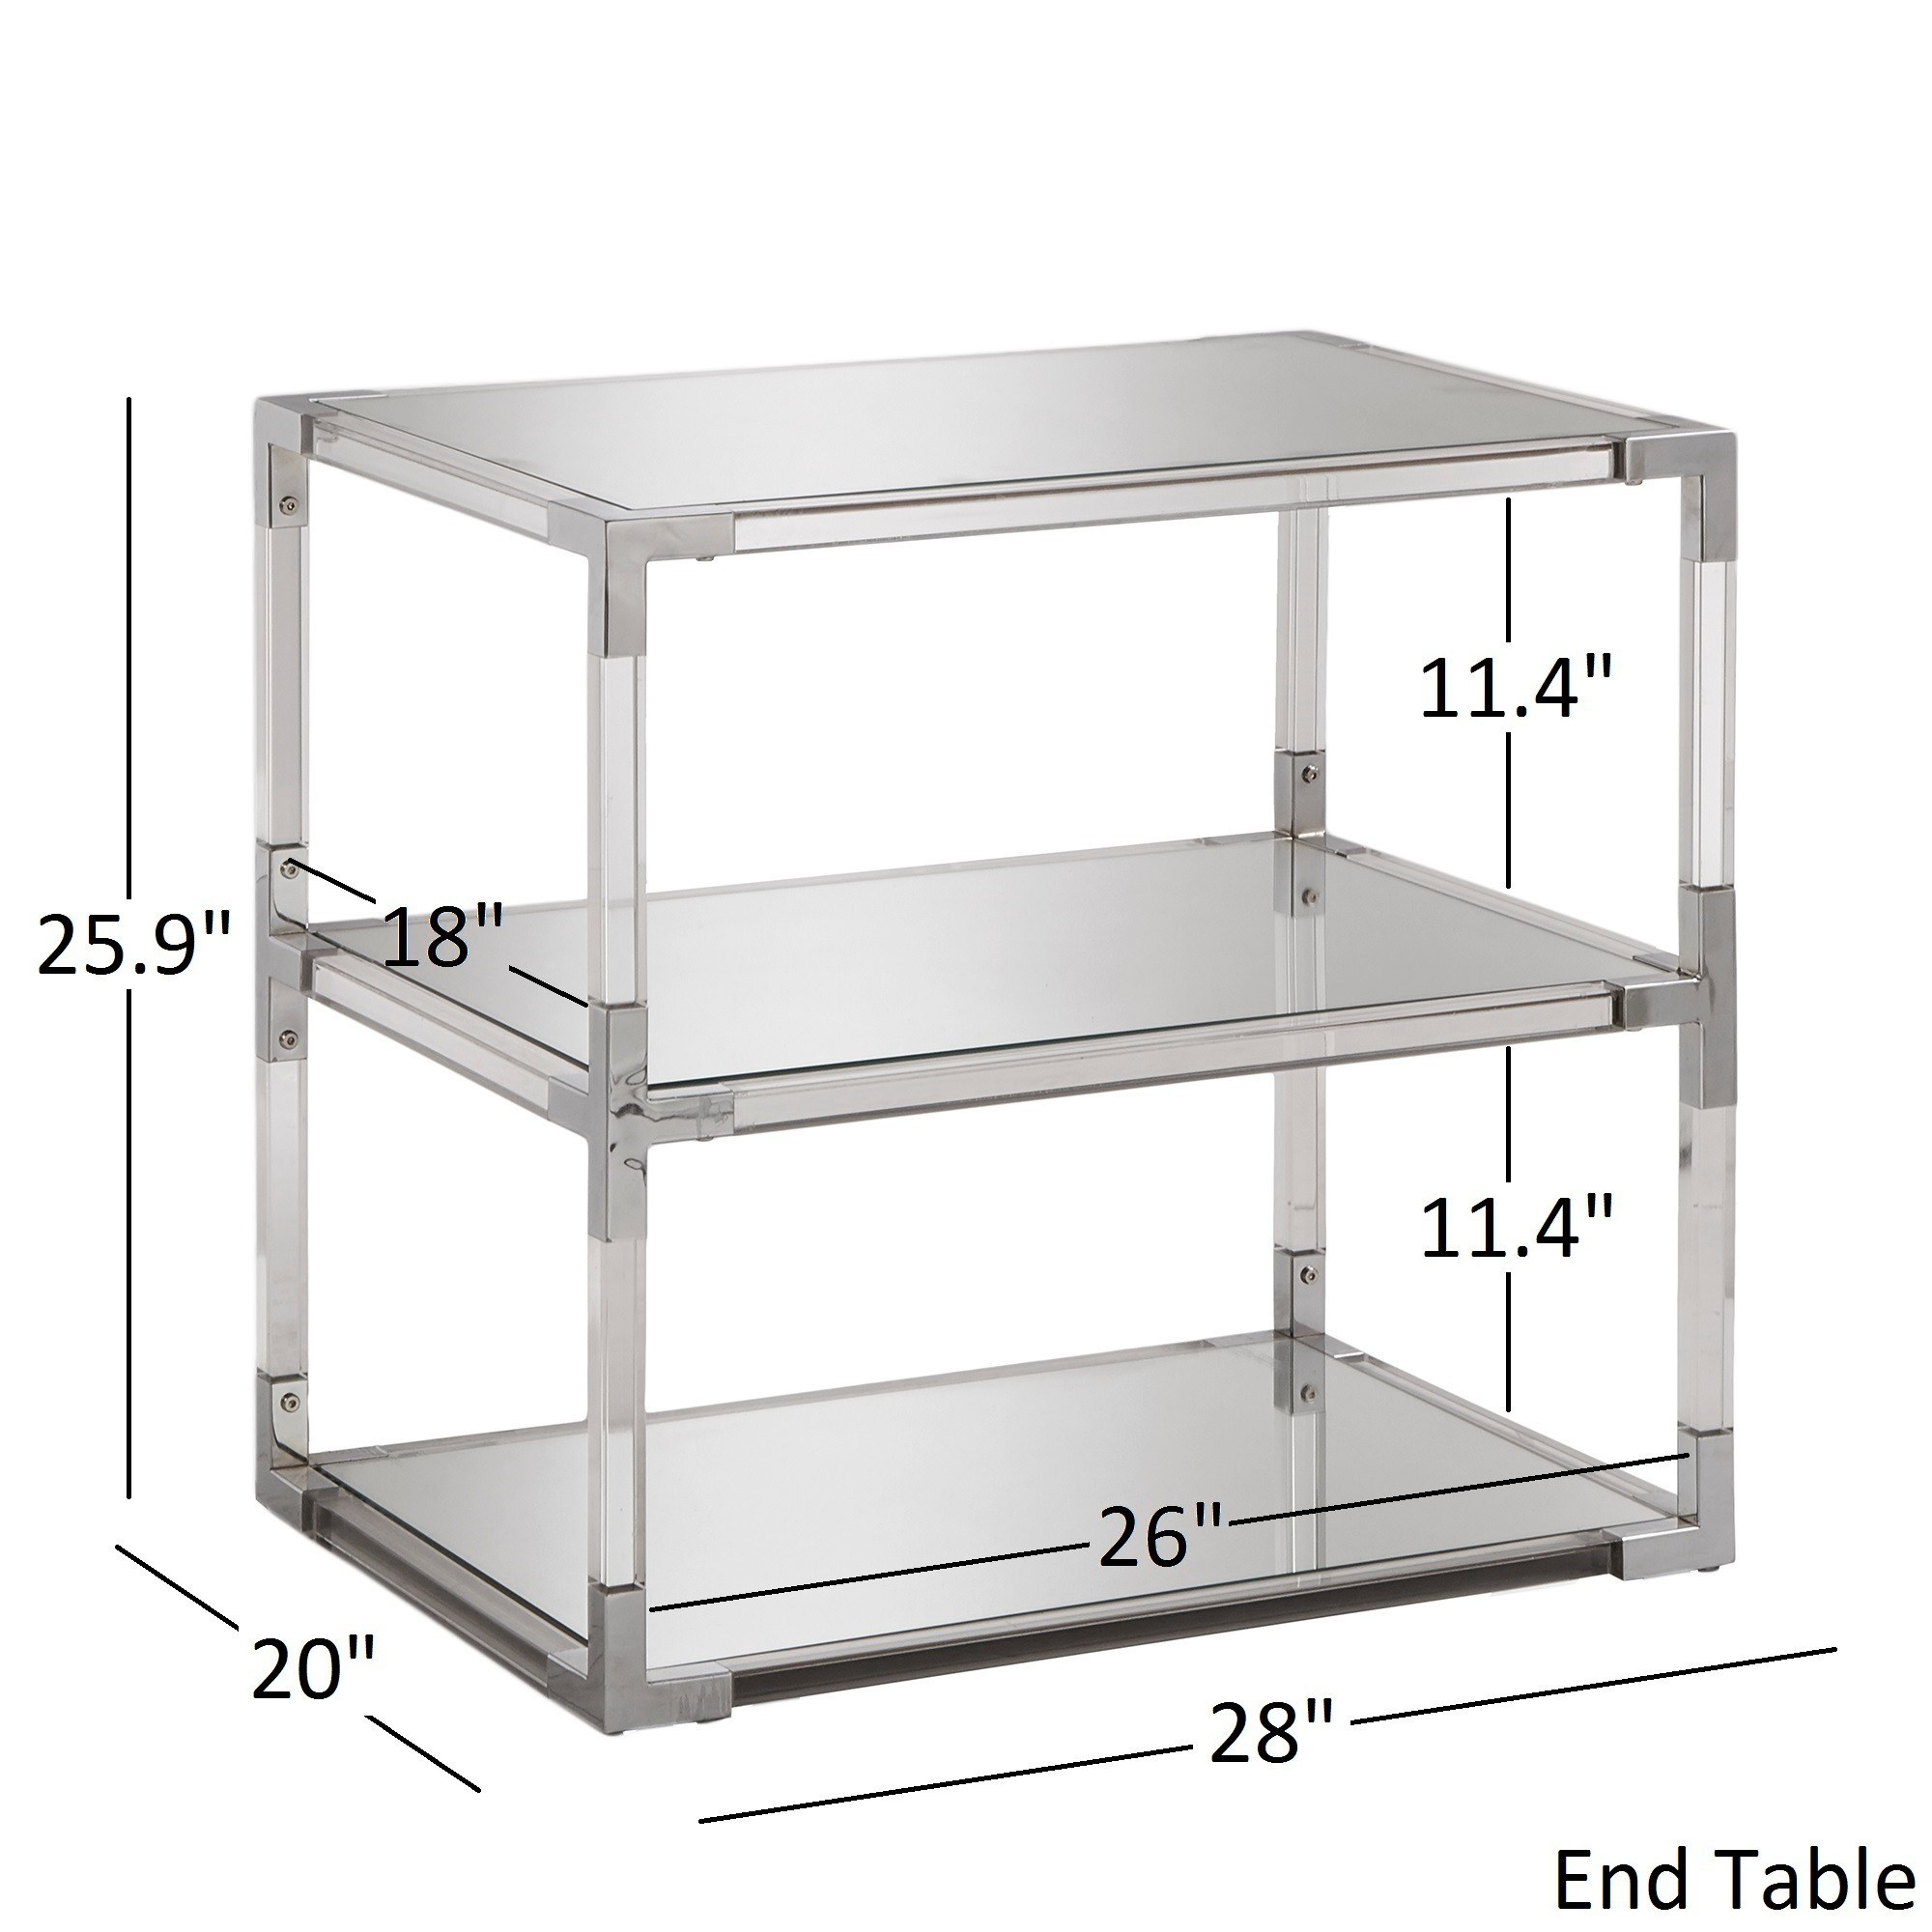 cyrus clear chrome corner mirrored shelf accent tables inspire glass table with drawer bold free shipping today moroccan tray meyda tiffany turtle lamp west elm industrial console